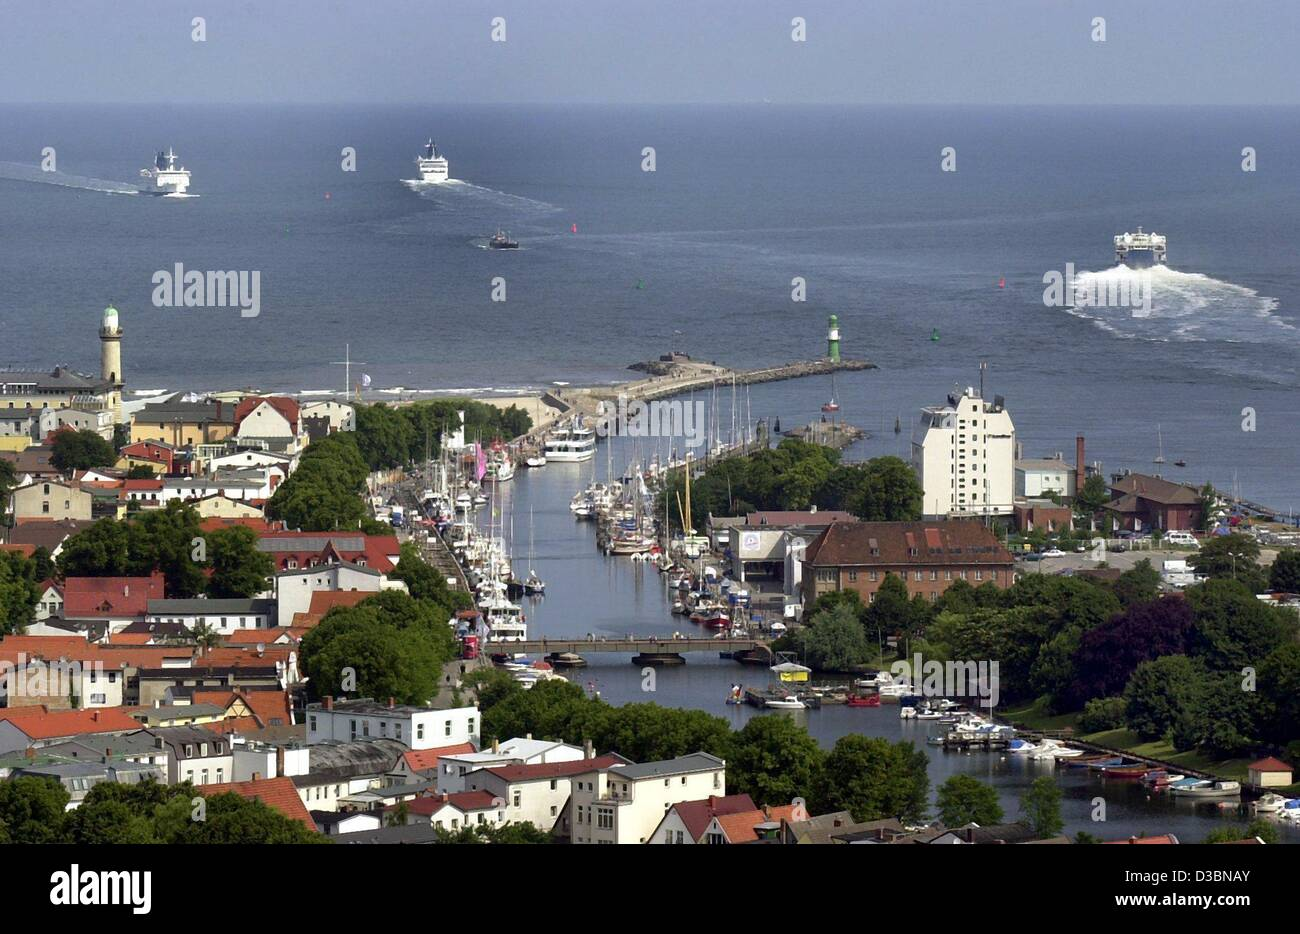 (dpa files) - A view over the city which was selected by the German National Olympic Committee (NOC) as the candidate - Stock Image